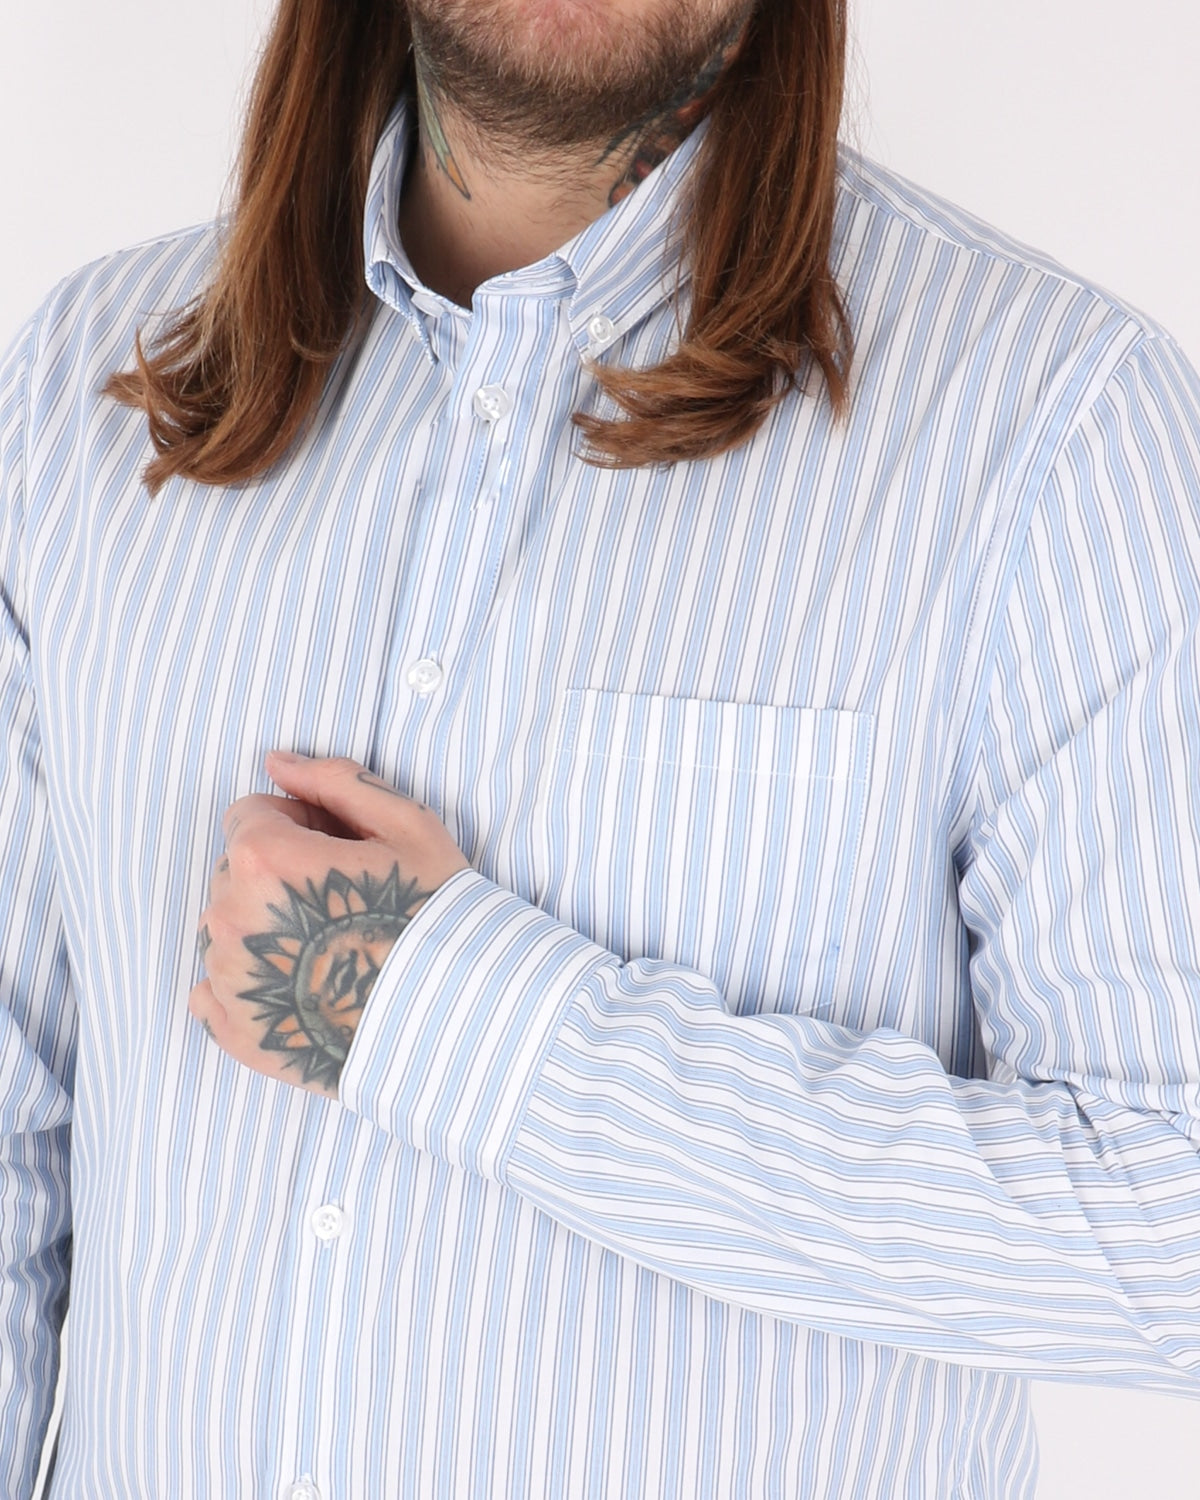 legends_lagos shirt_light blue striped_3_3